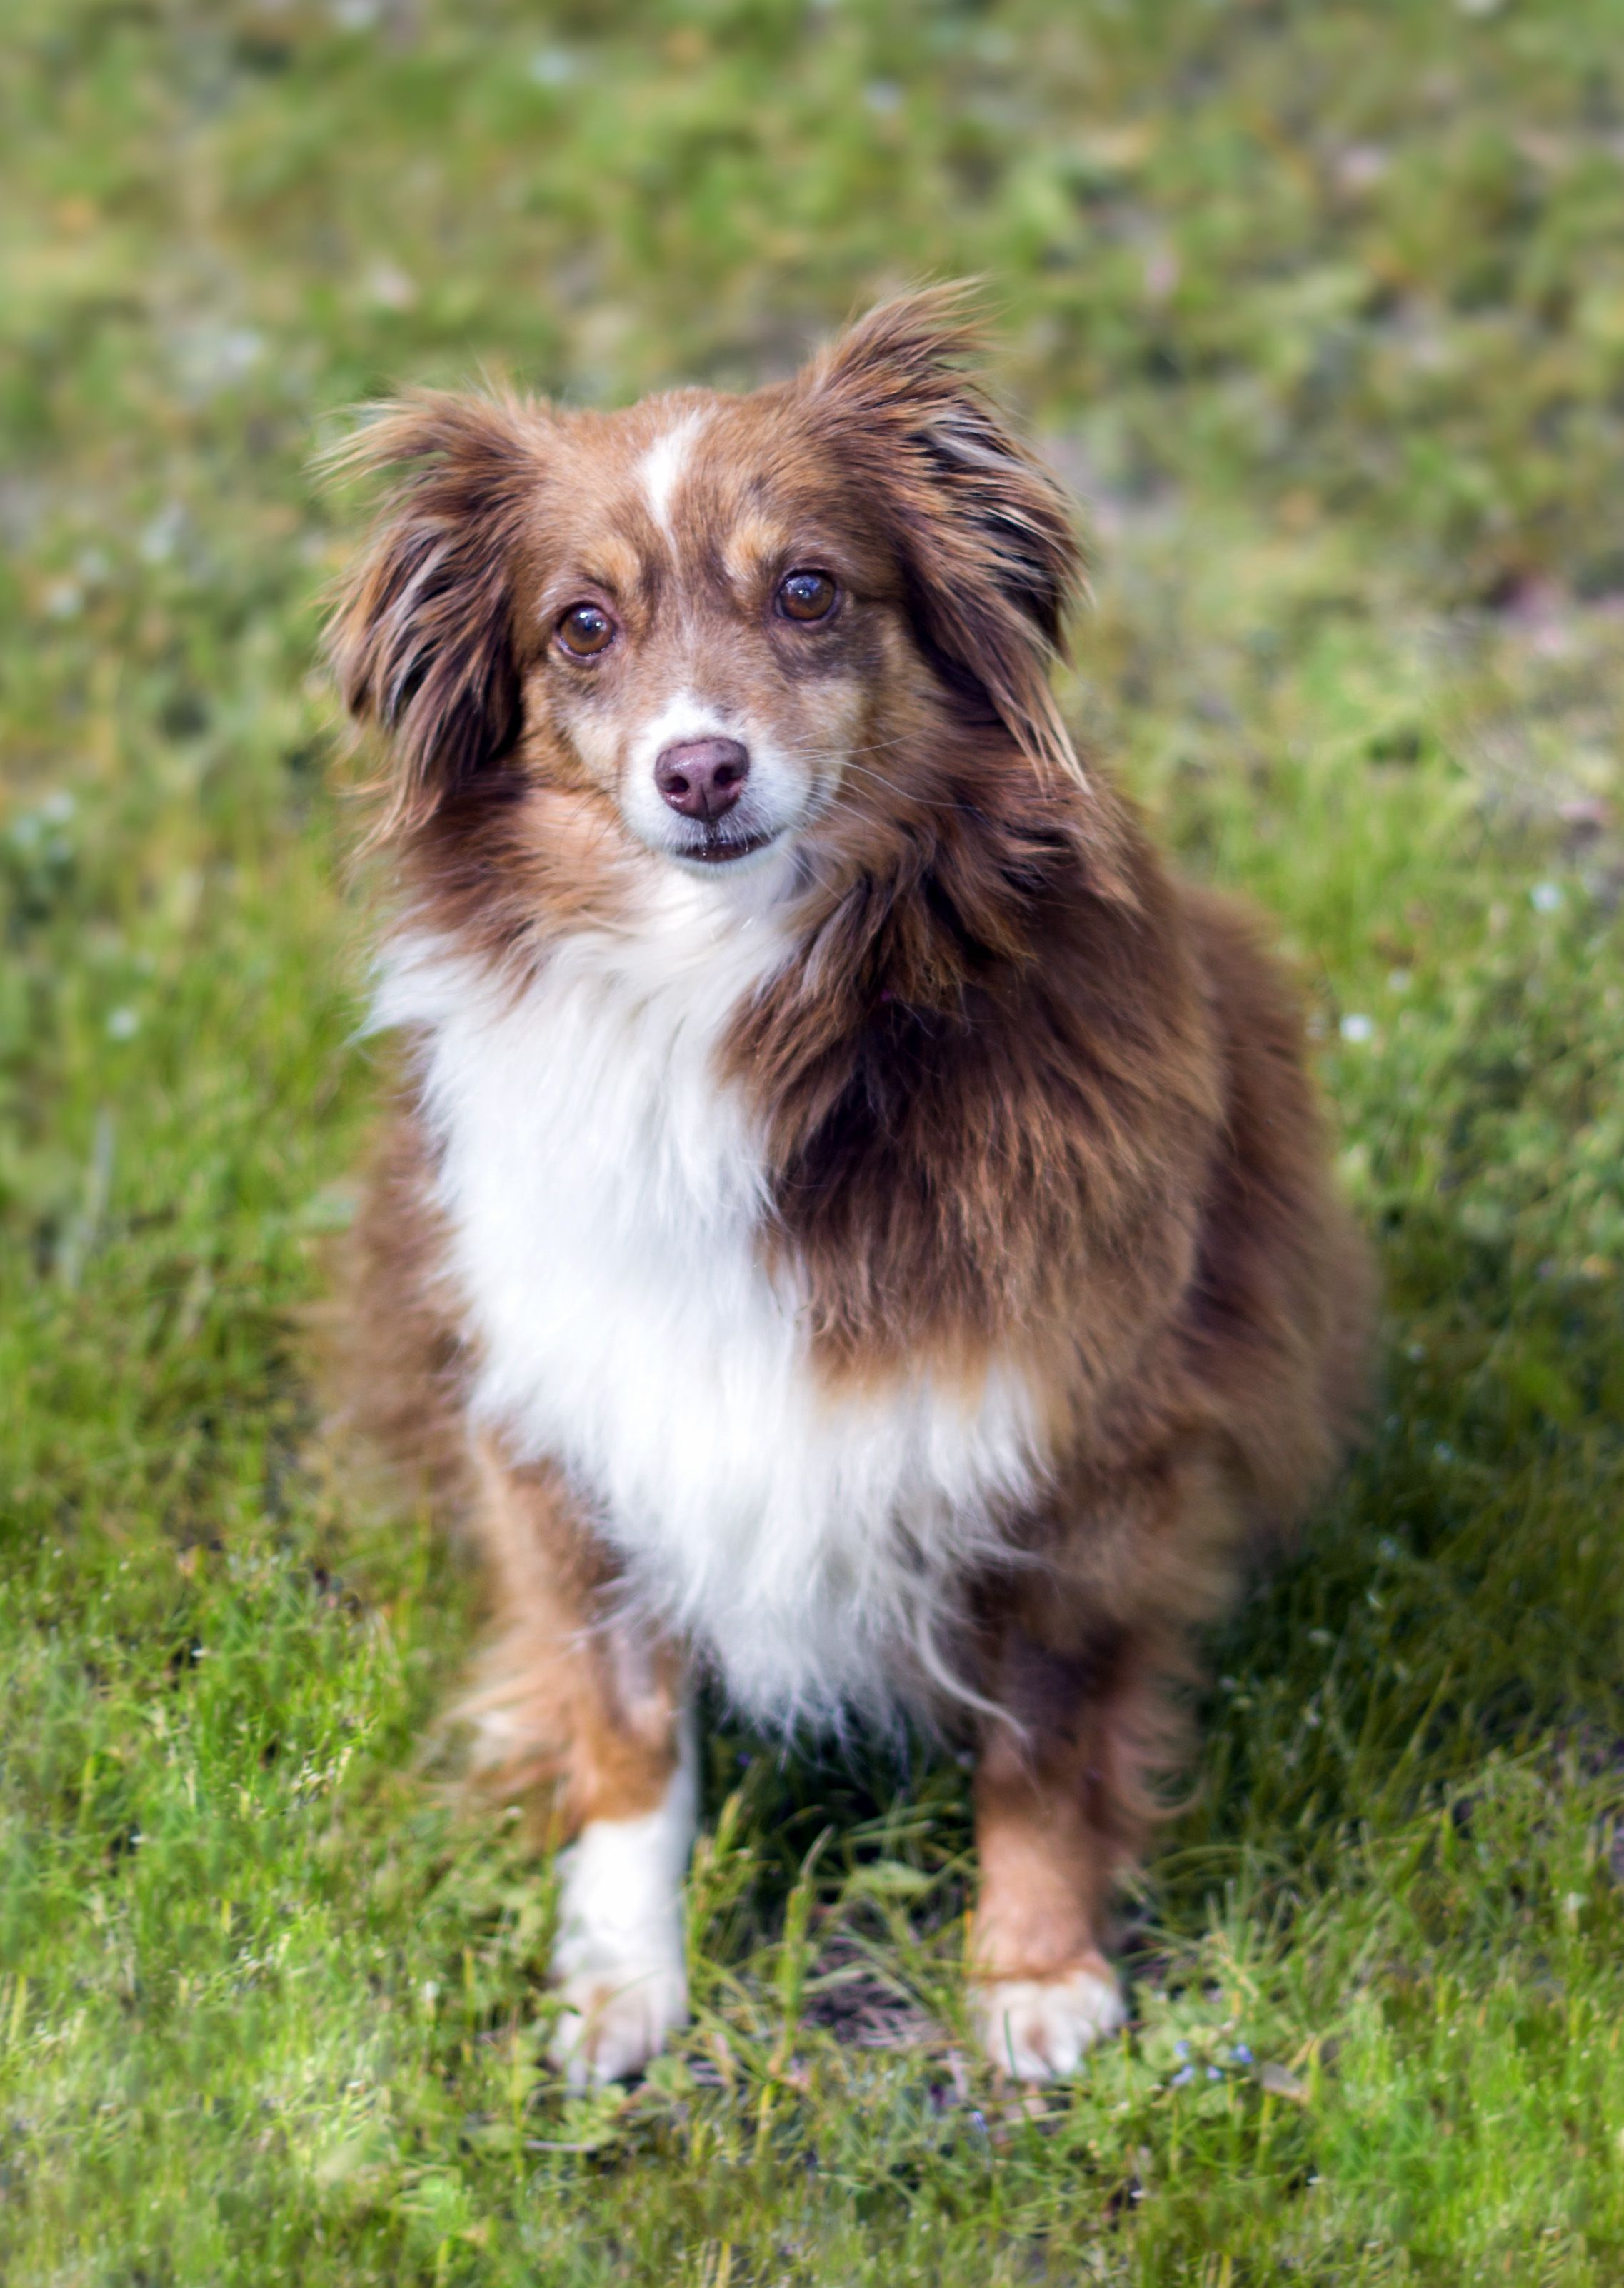 Australian Shepherd dog for Adoption in Maple Grove, MN